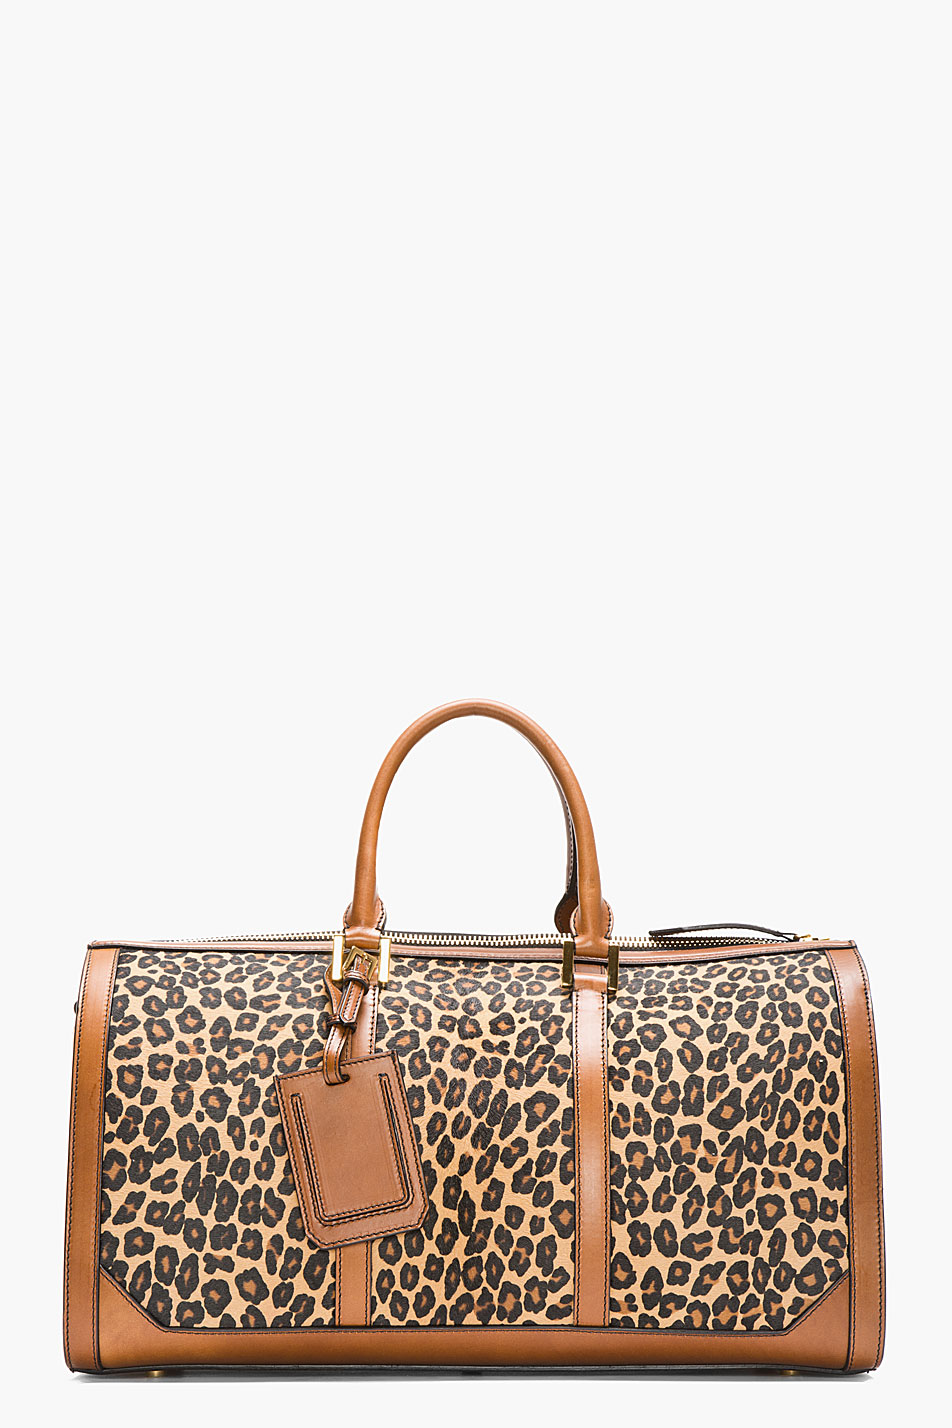 Burberry Prorsum Tan Leopard Print Calf Hair House Check